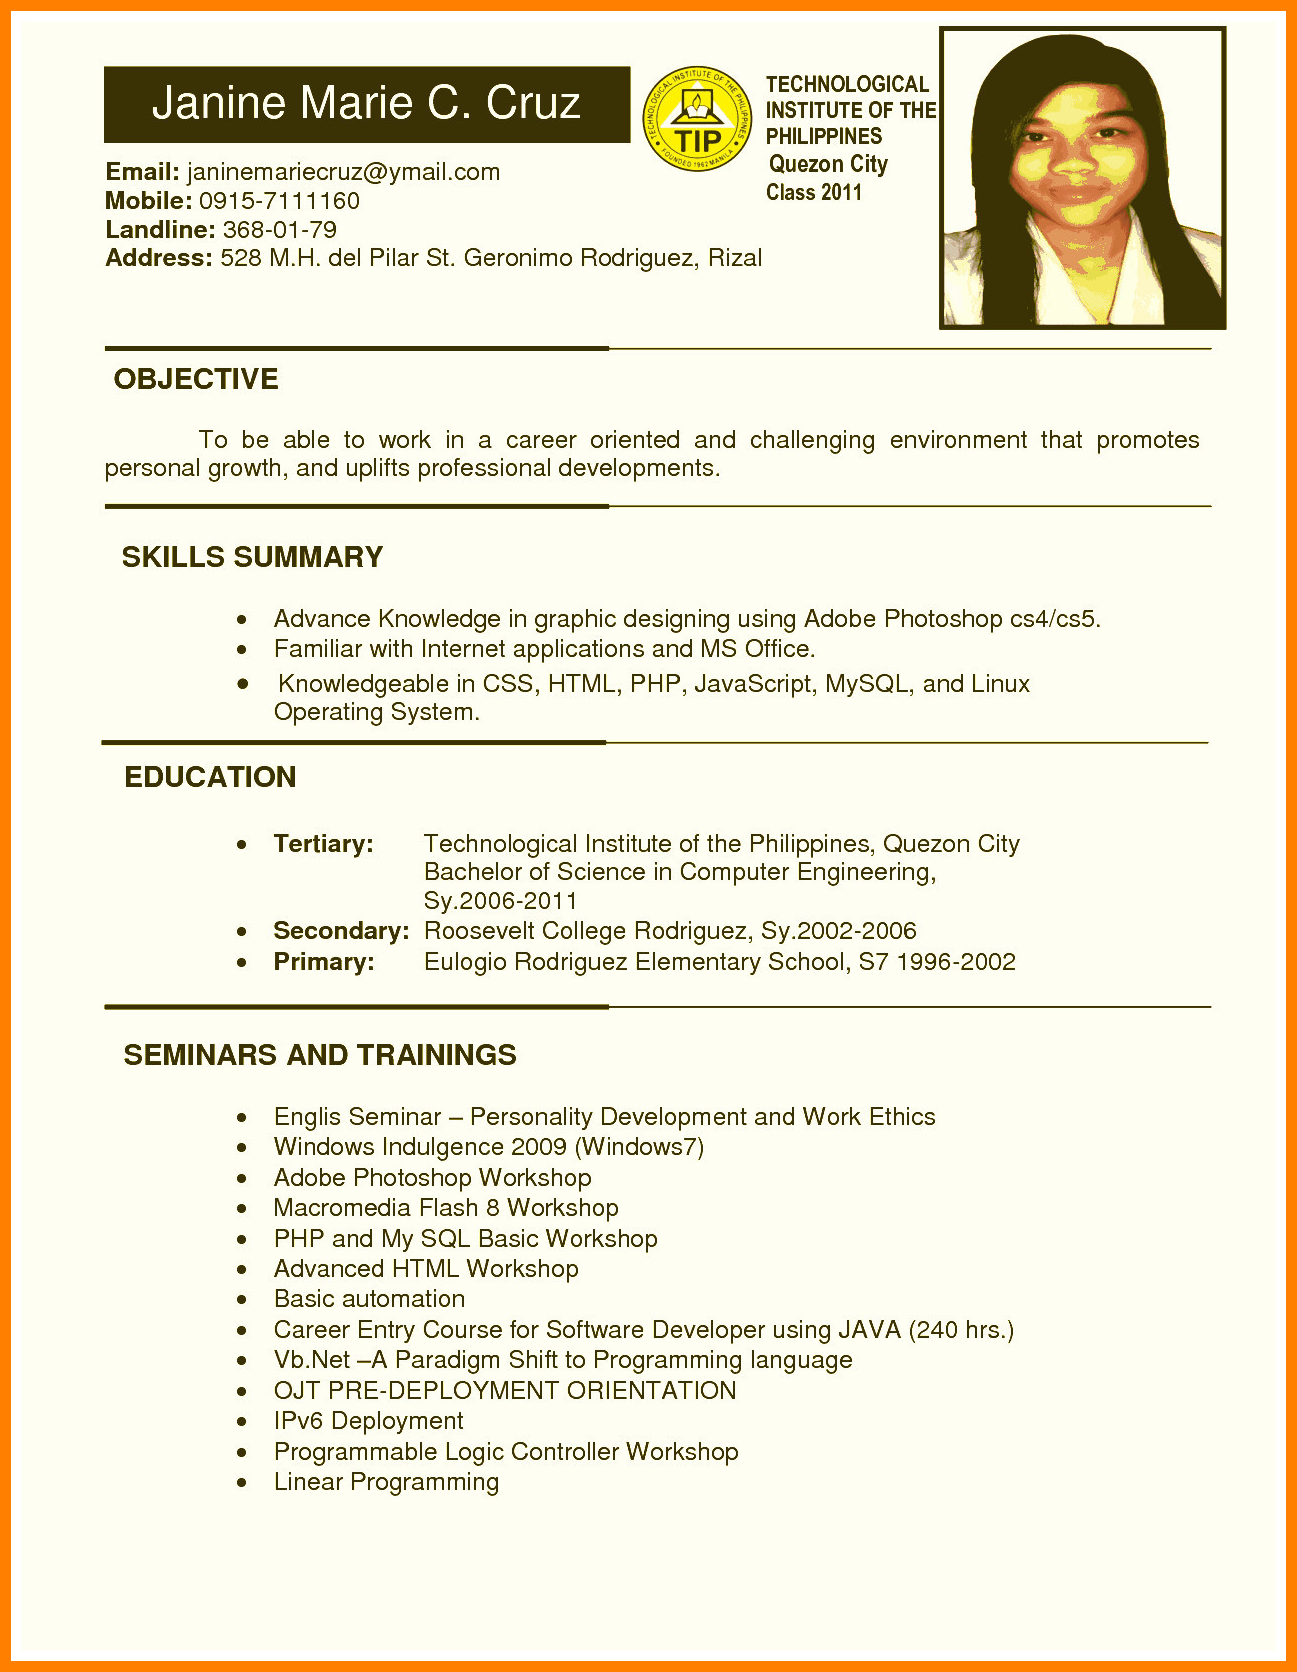 Resume Template College Student 3 Things To Expect When Attending Resume Template College St In 2020 Job Resume Format Resume Format Job Resume